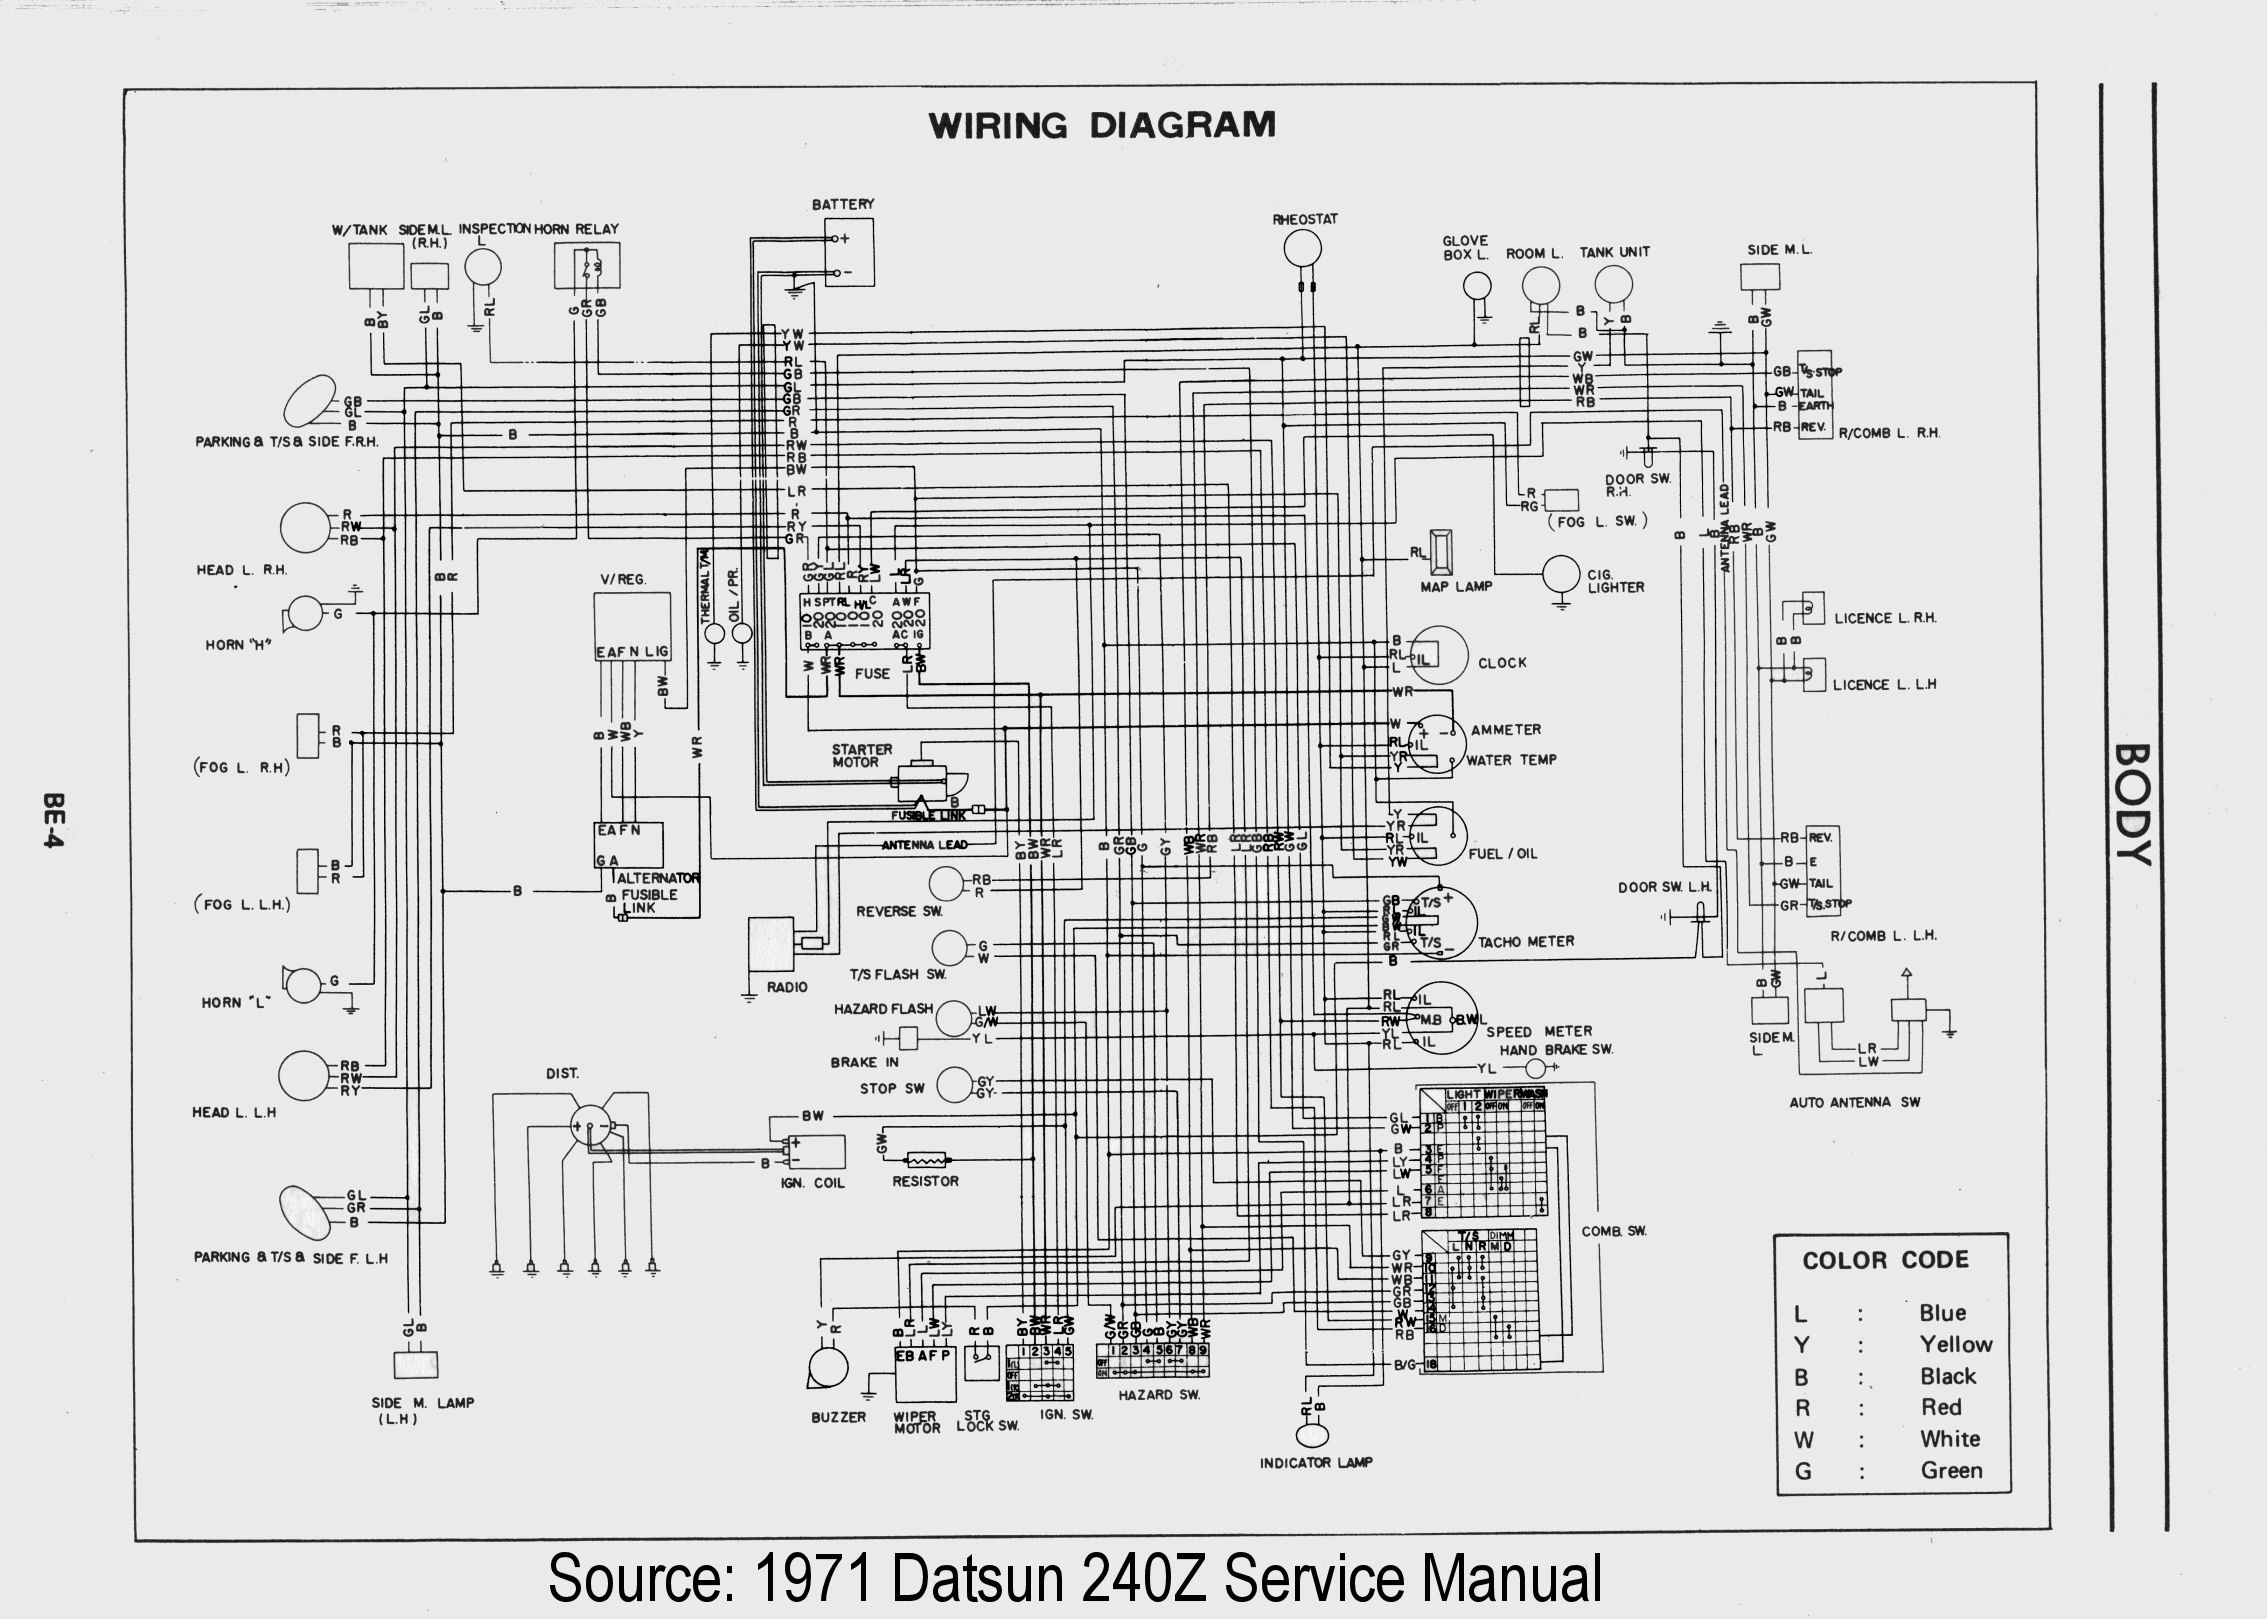 Wiring Diagram HiRes 2 generic wiring troubleshooting checklist woodworkerb Online Car Wiring Diagrams at webbmarketing.co